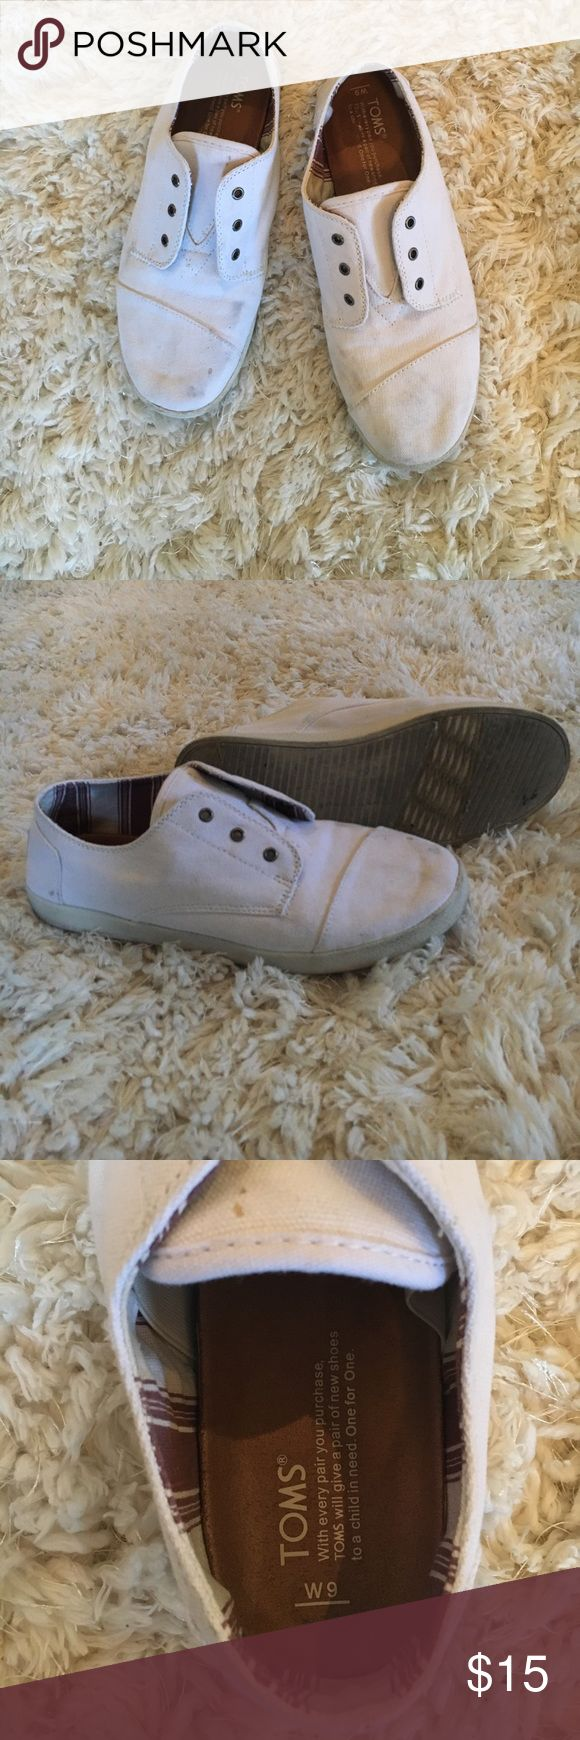 Toms slip one In good condition just need a wash Toms Shoes Sneakers